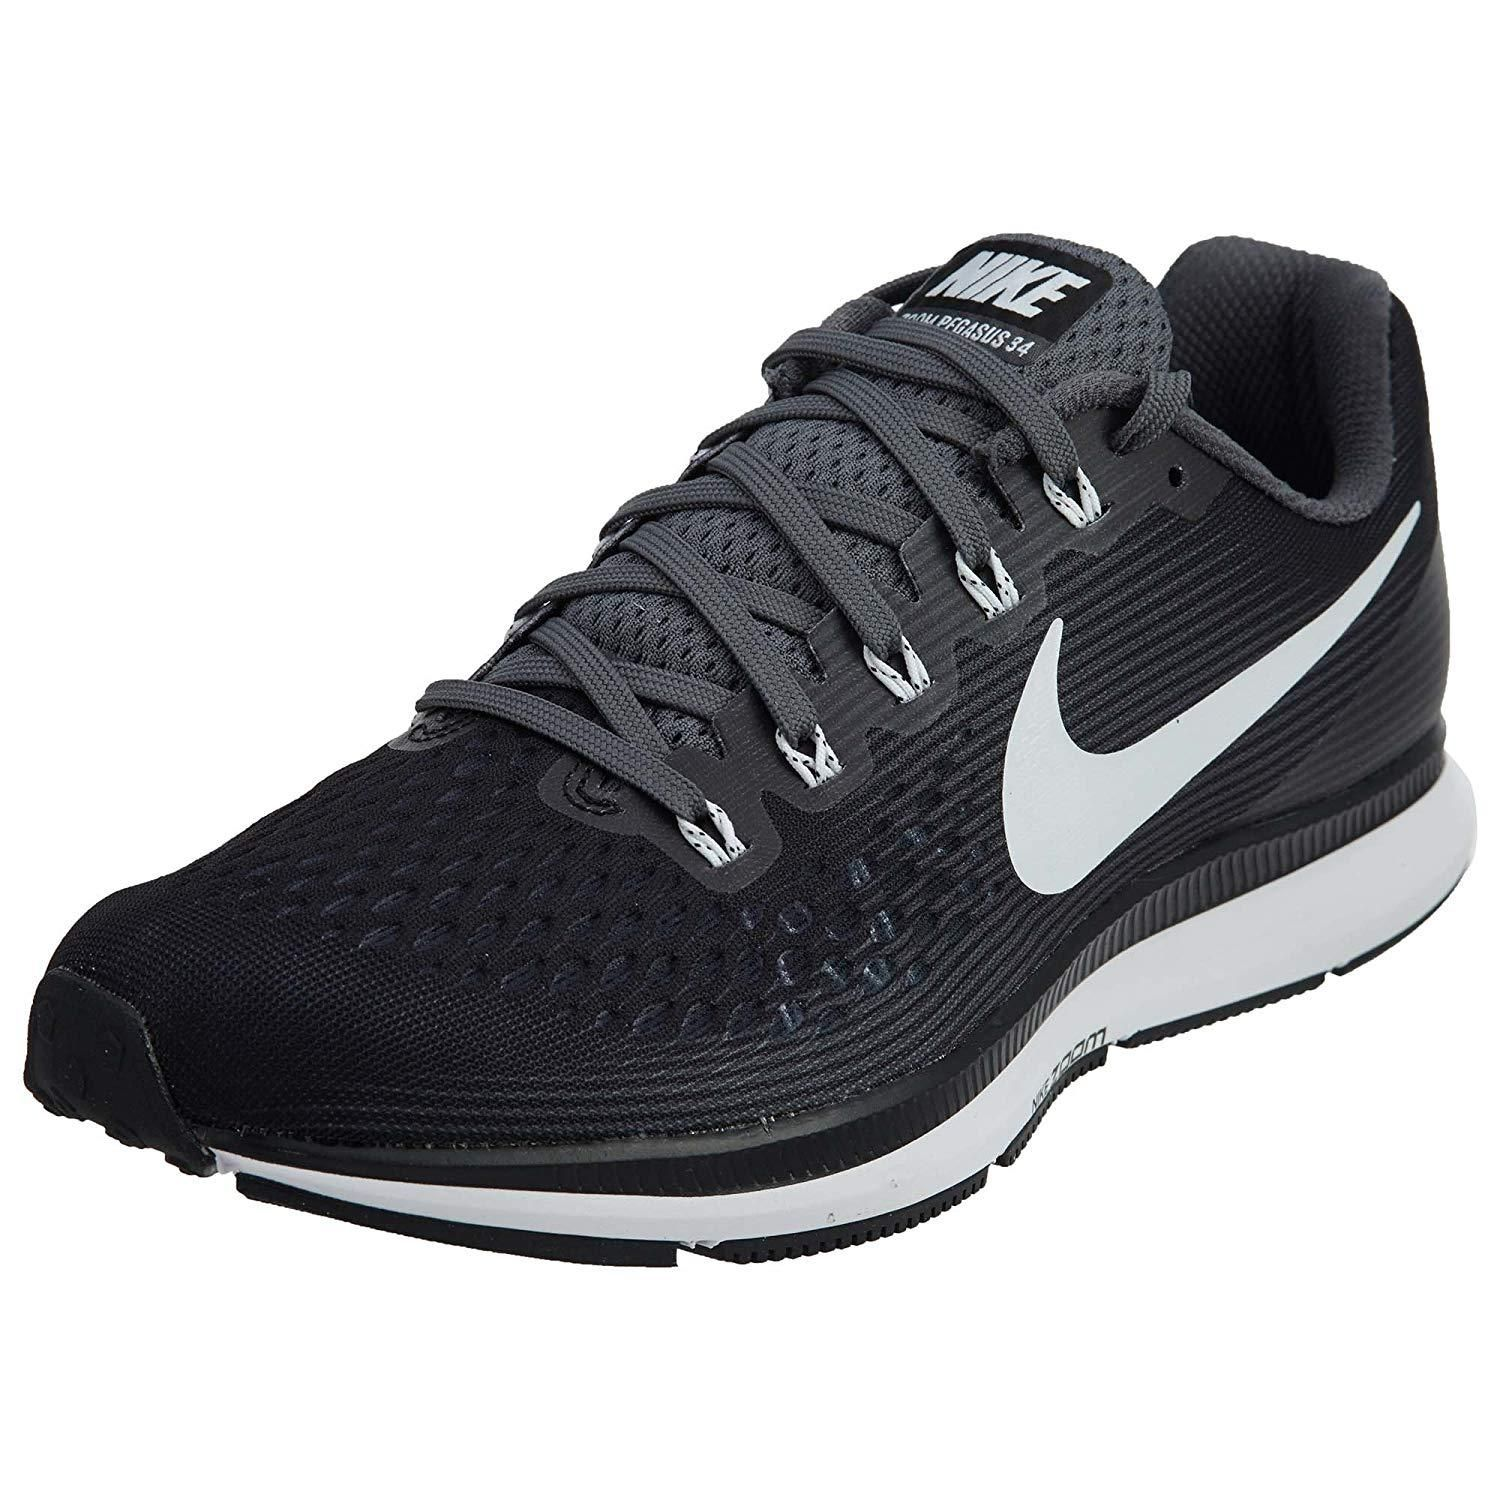 buy popular a316a 937b7 Nike Air Zoom Pegasus 34 TB Turbo Running Shoe, Black/White ...